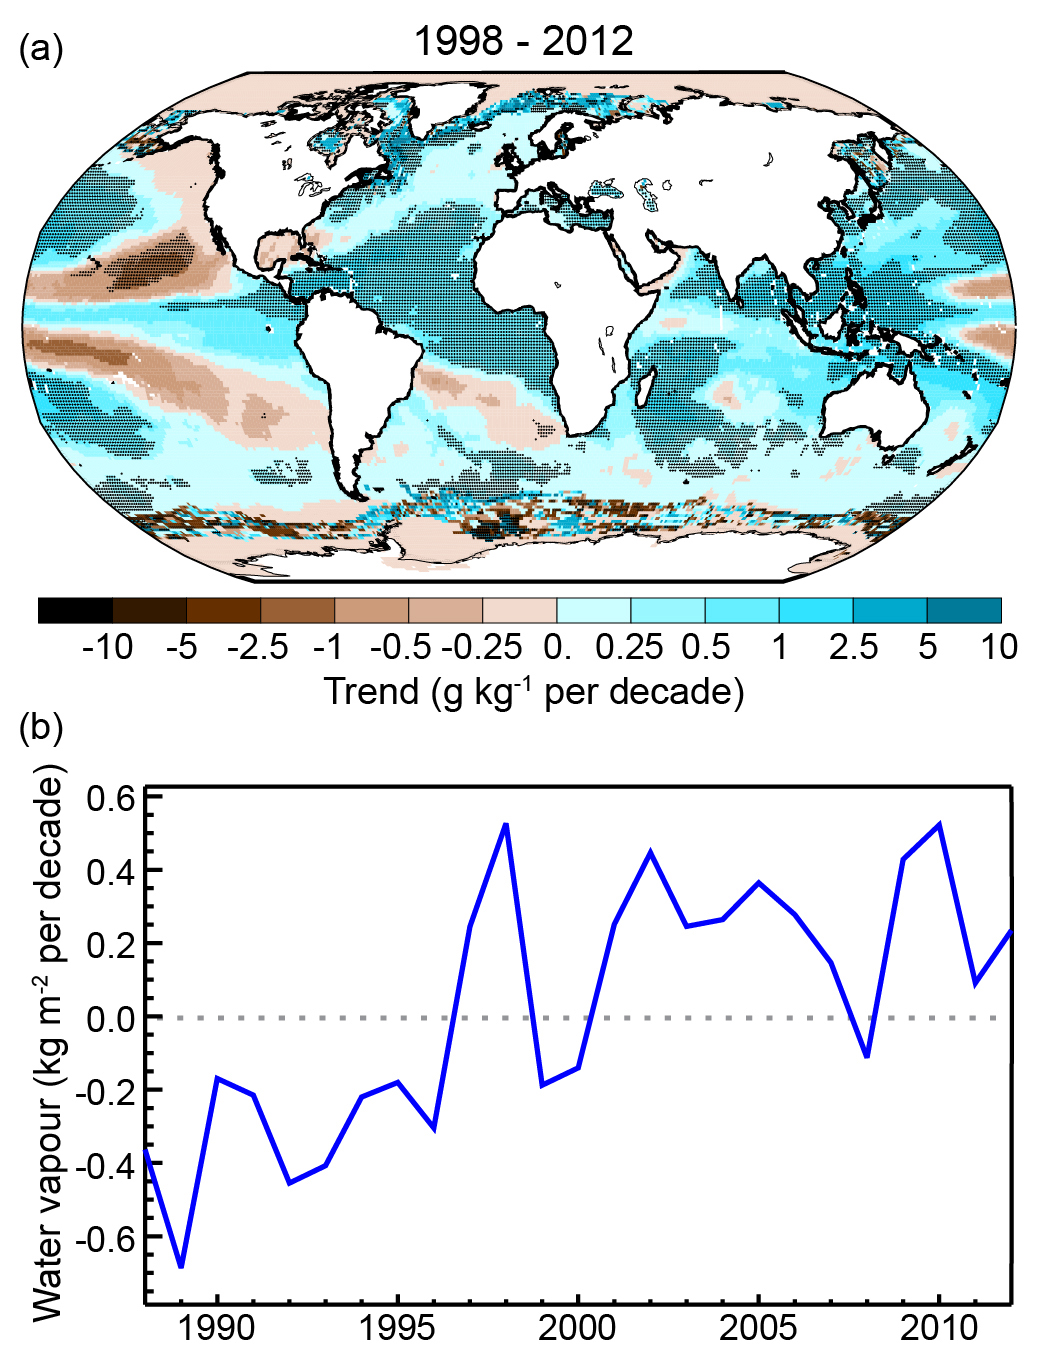 (a) Observed changes in surface specific humidity estimated from satellites. Dark shading indicates significant changes. (b) Changes in globally averaged water vapor content. From Harmann et al. (2013). Image from ipcc.ch.